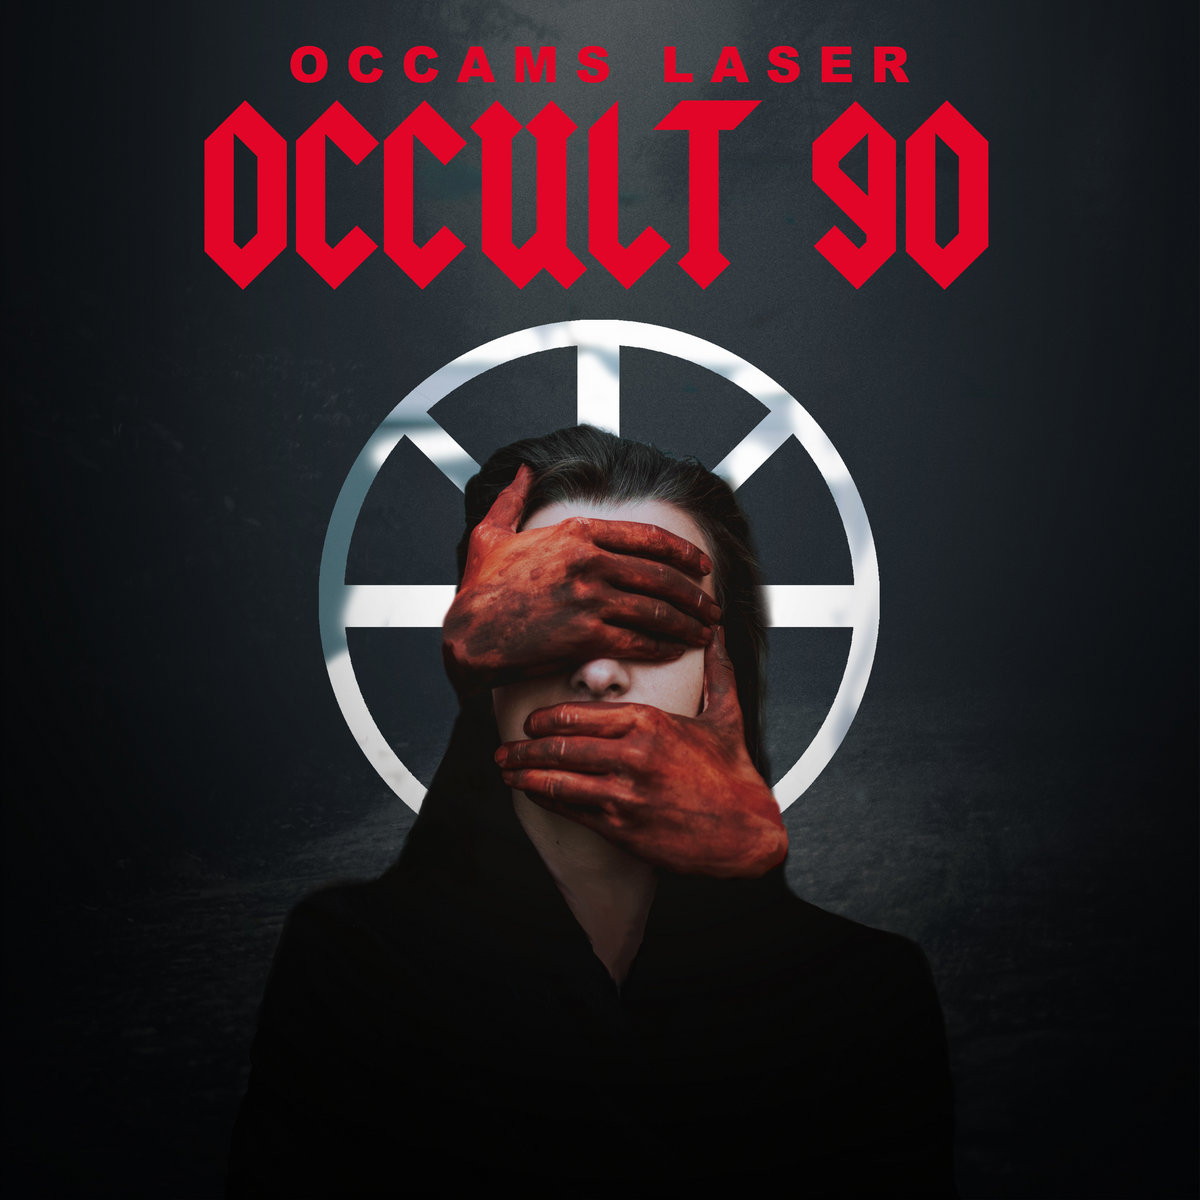 a0997418275 10 - Occams Laser - Occult 90